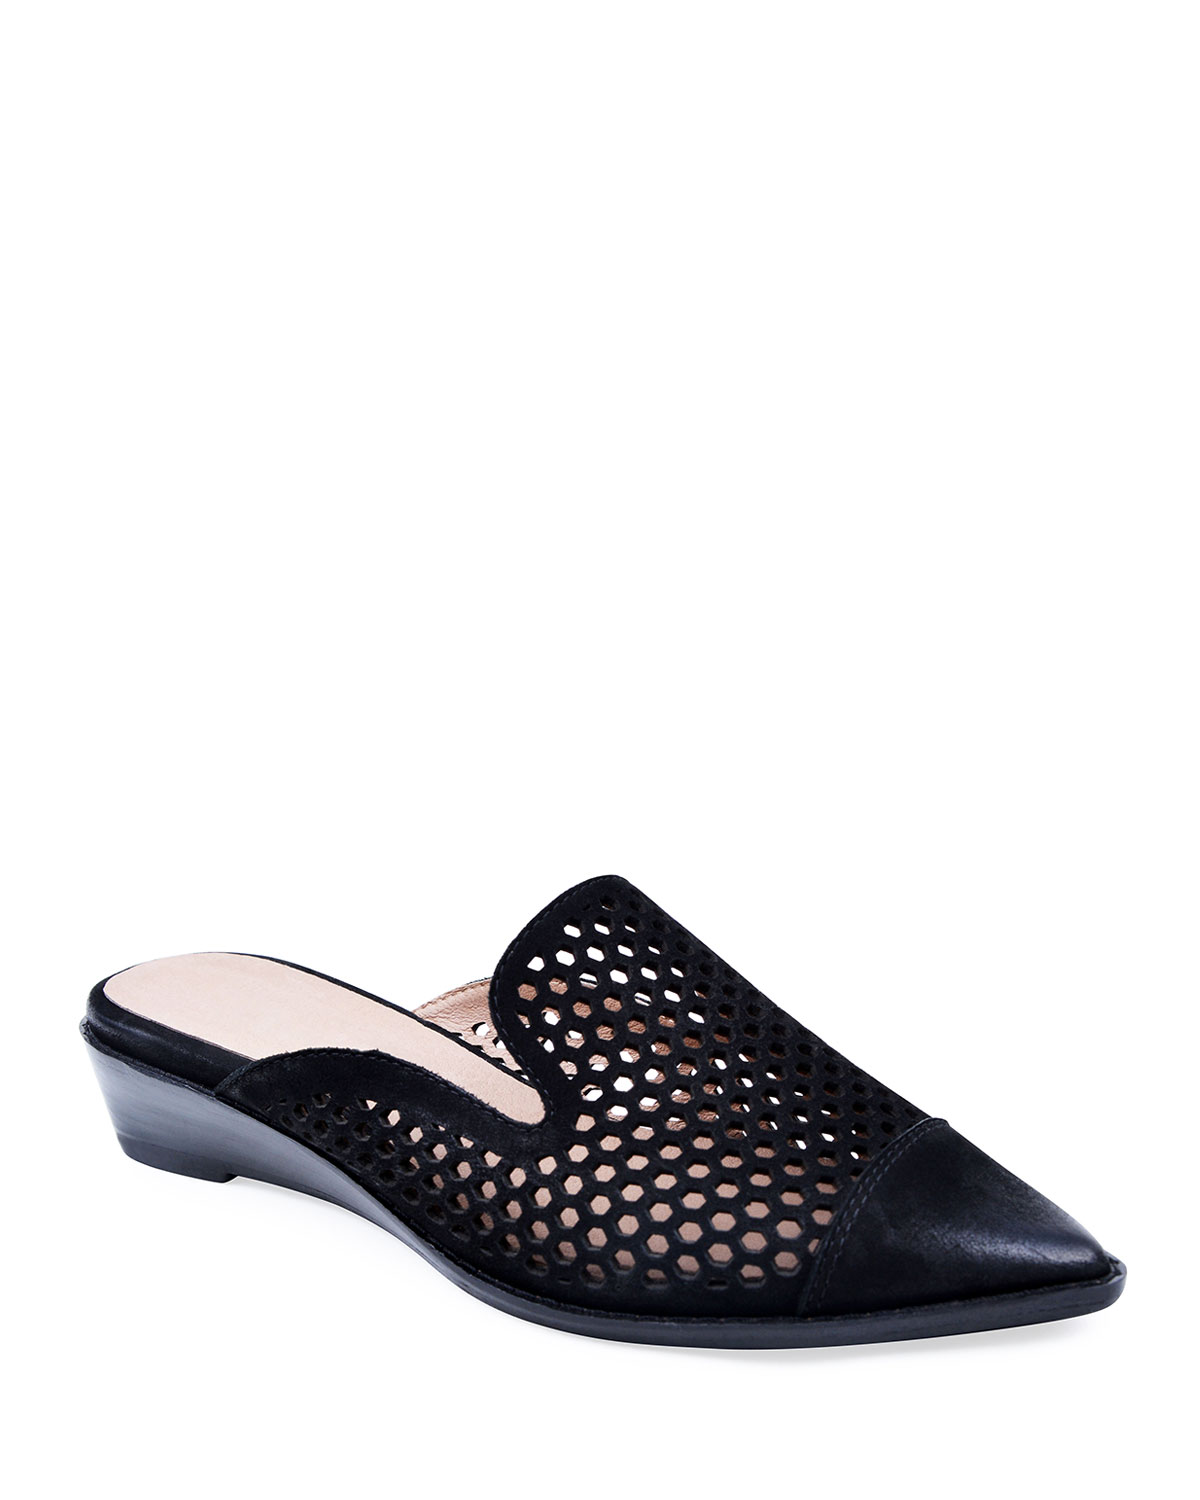 Cara Perforated Leather Mules, Black